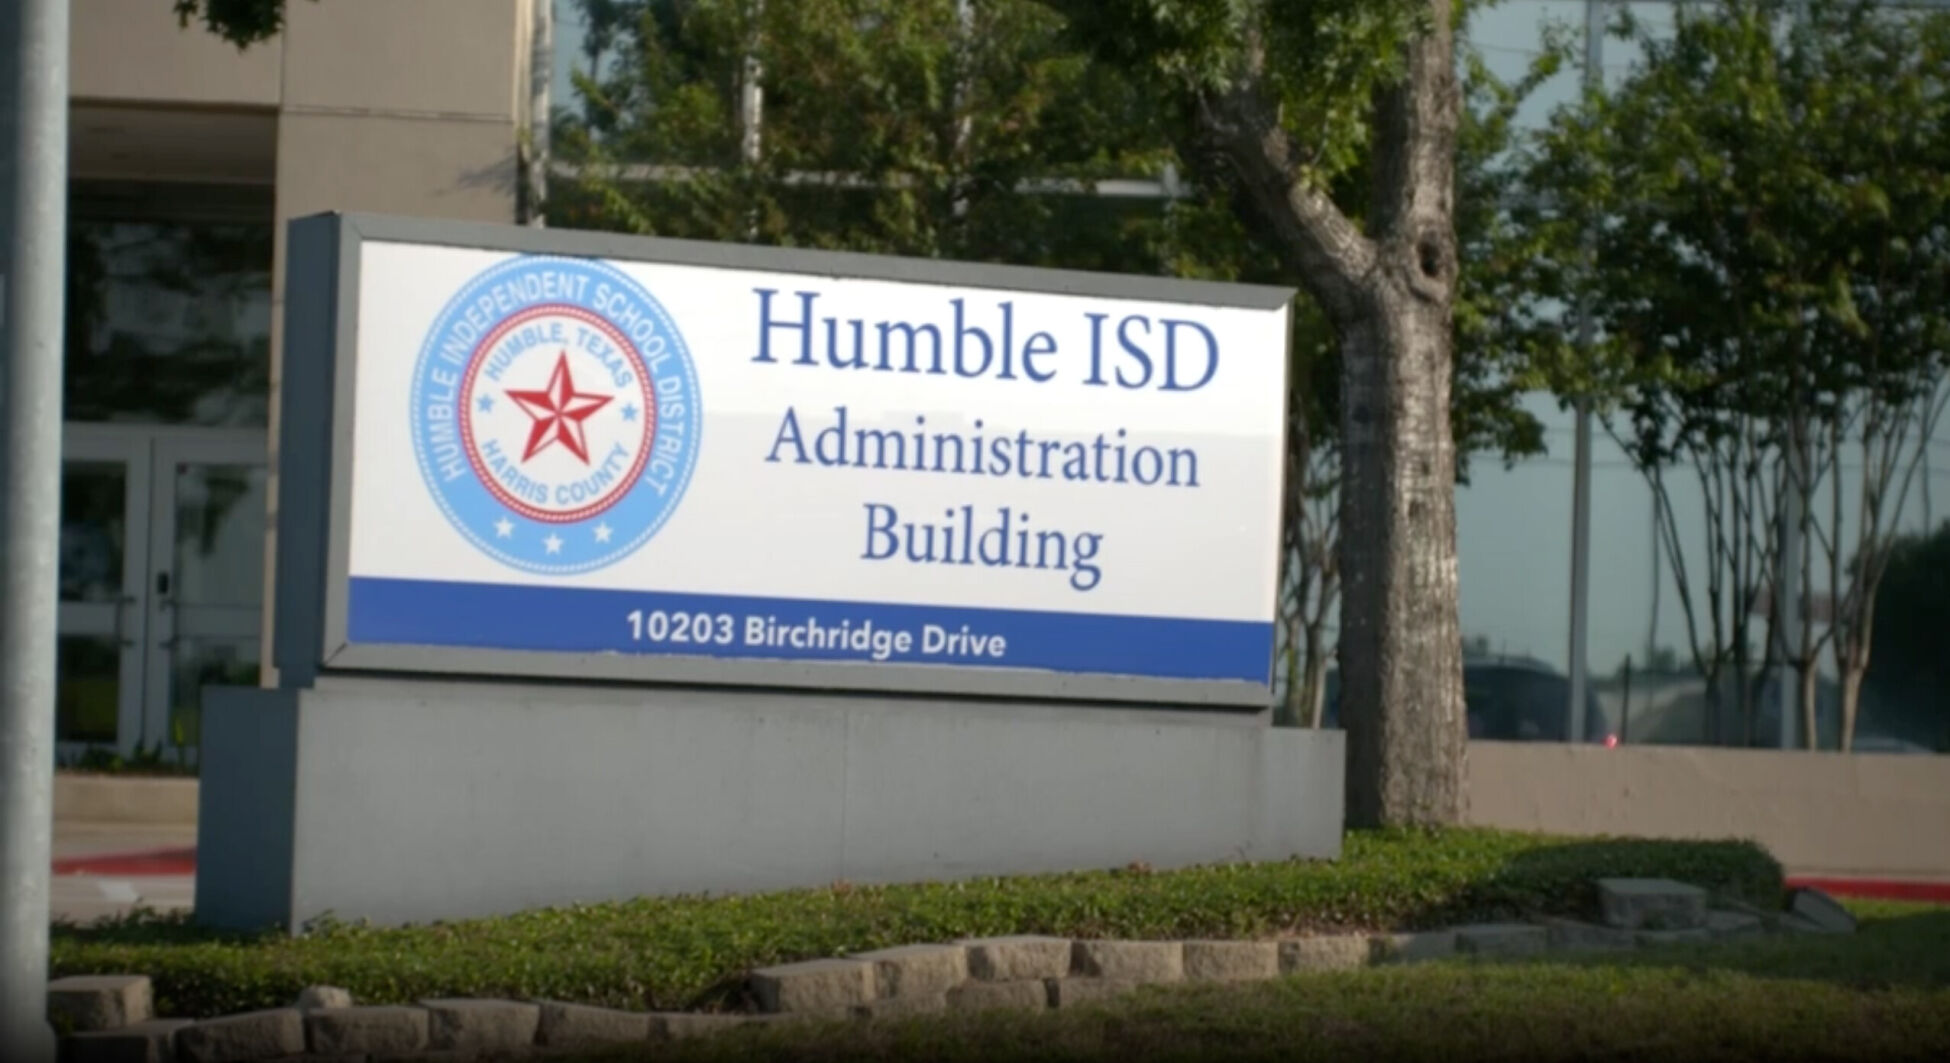 Covid-19 cases at this Texas school are spiking, yet officials buck local mask mandate 6